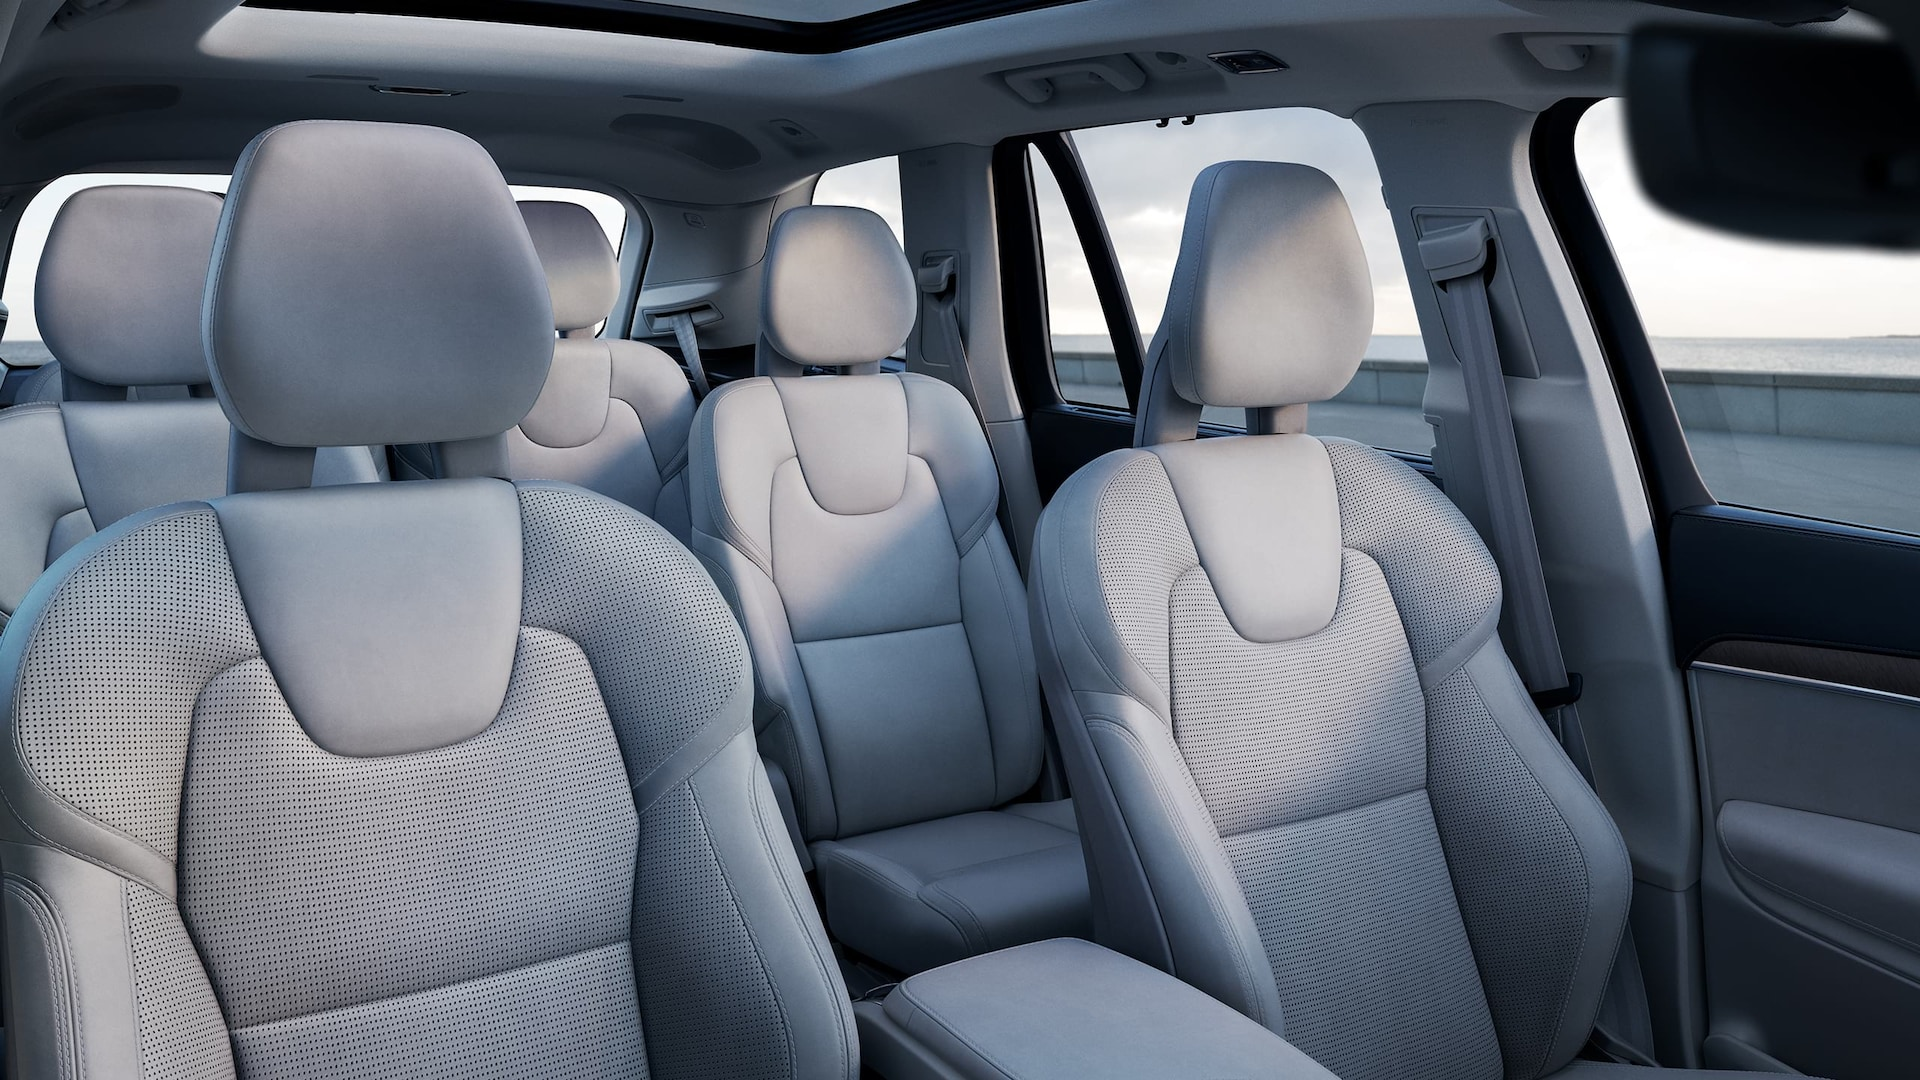 Inside a Volvo XC90 with 3 rows, blonde interior on seats